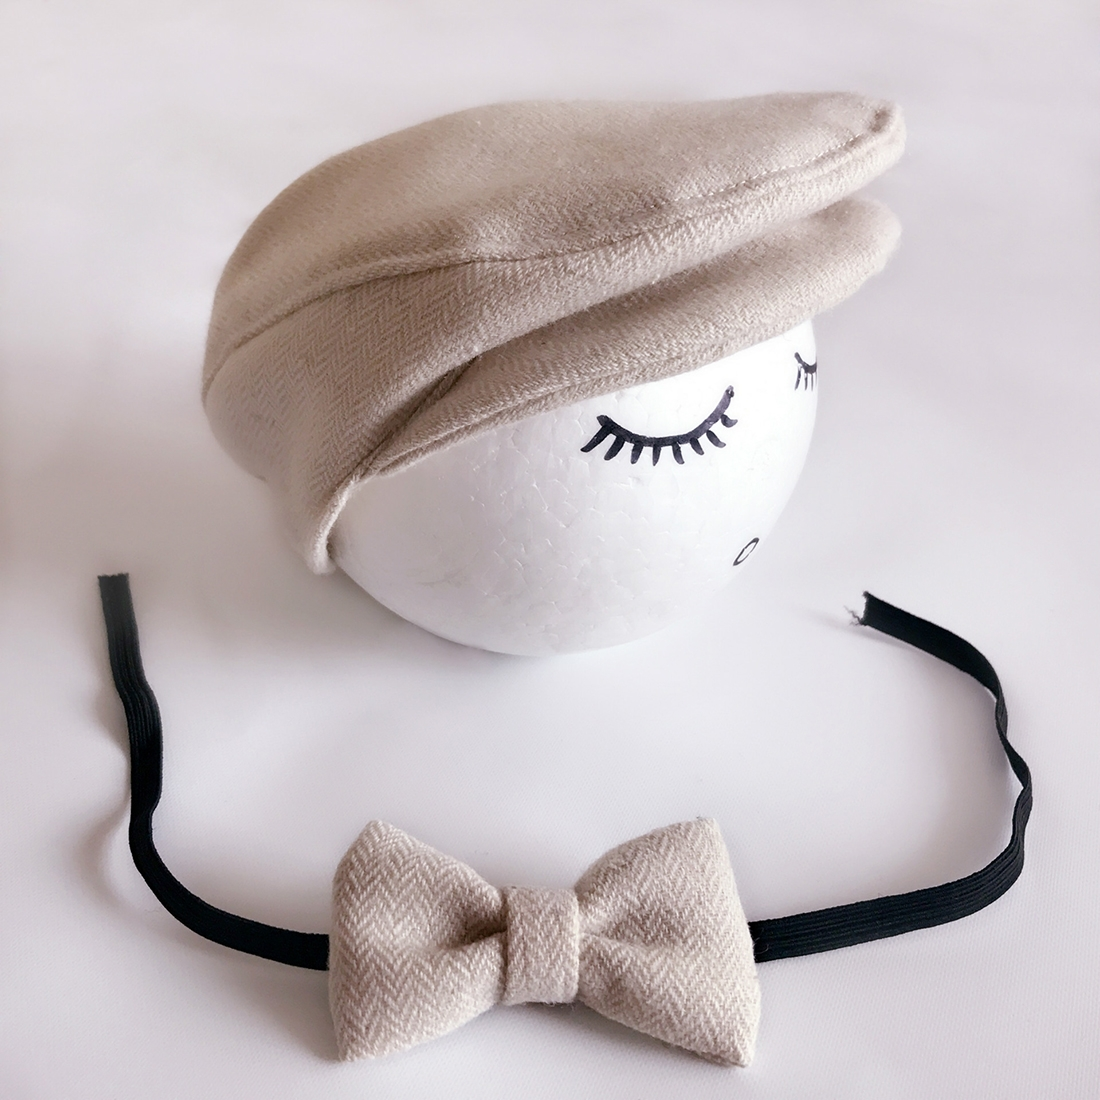 d58dfef7c4d49 Newborn Baby Photography Props Photo Shoot Outfits Infant Cap Cabbie Hat  with Bowtie Set Beige. ALA0000X_1.jpg; ALA0000X.jpg ...